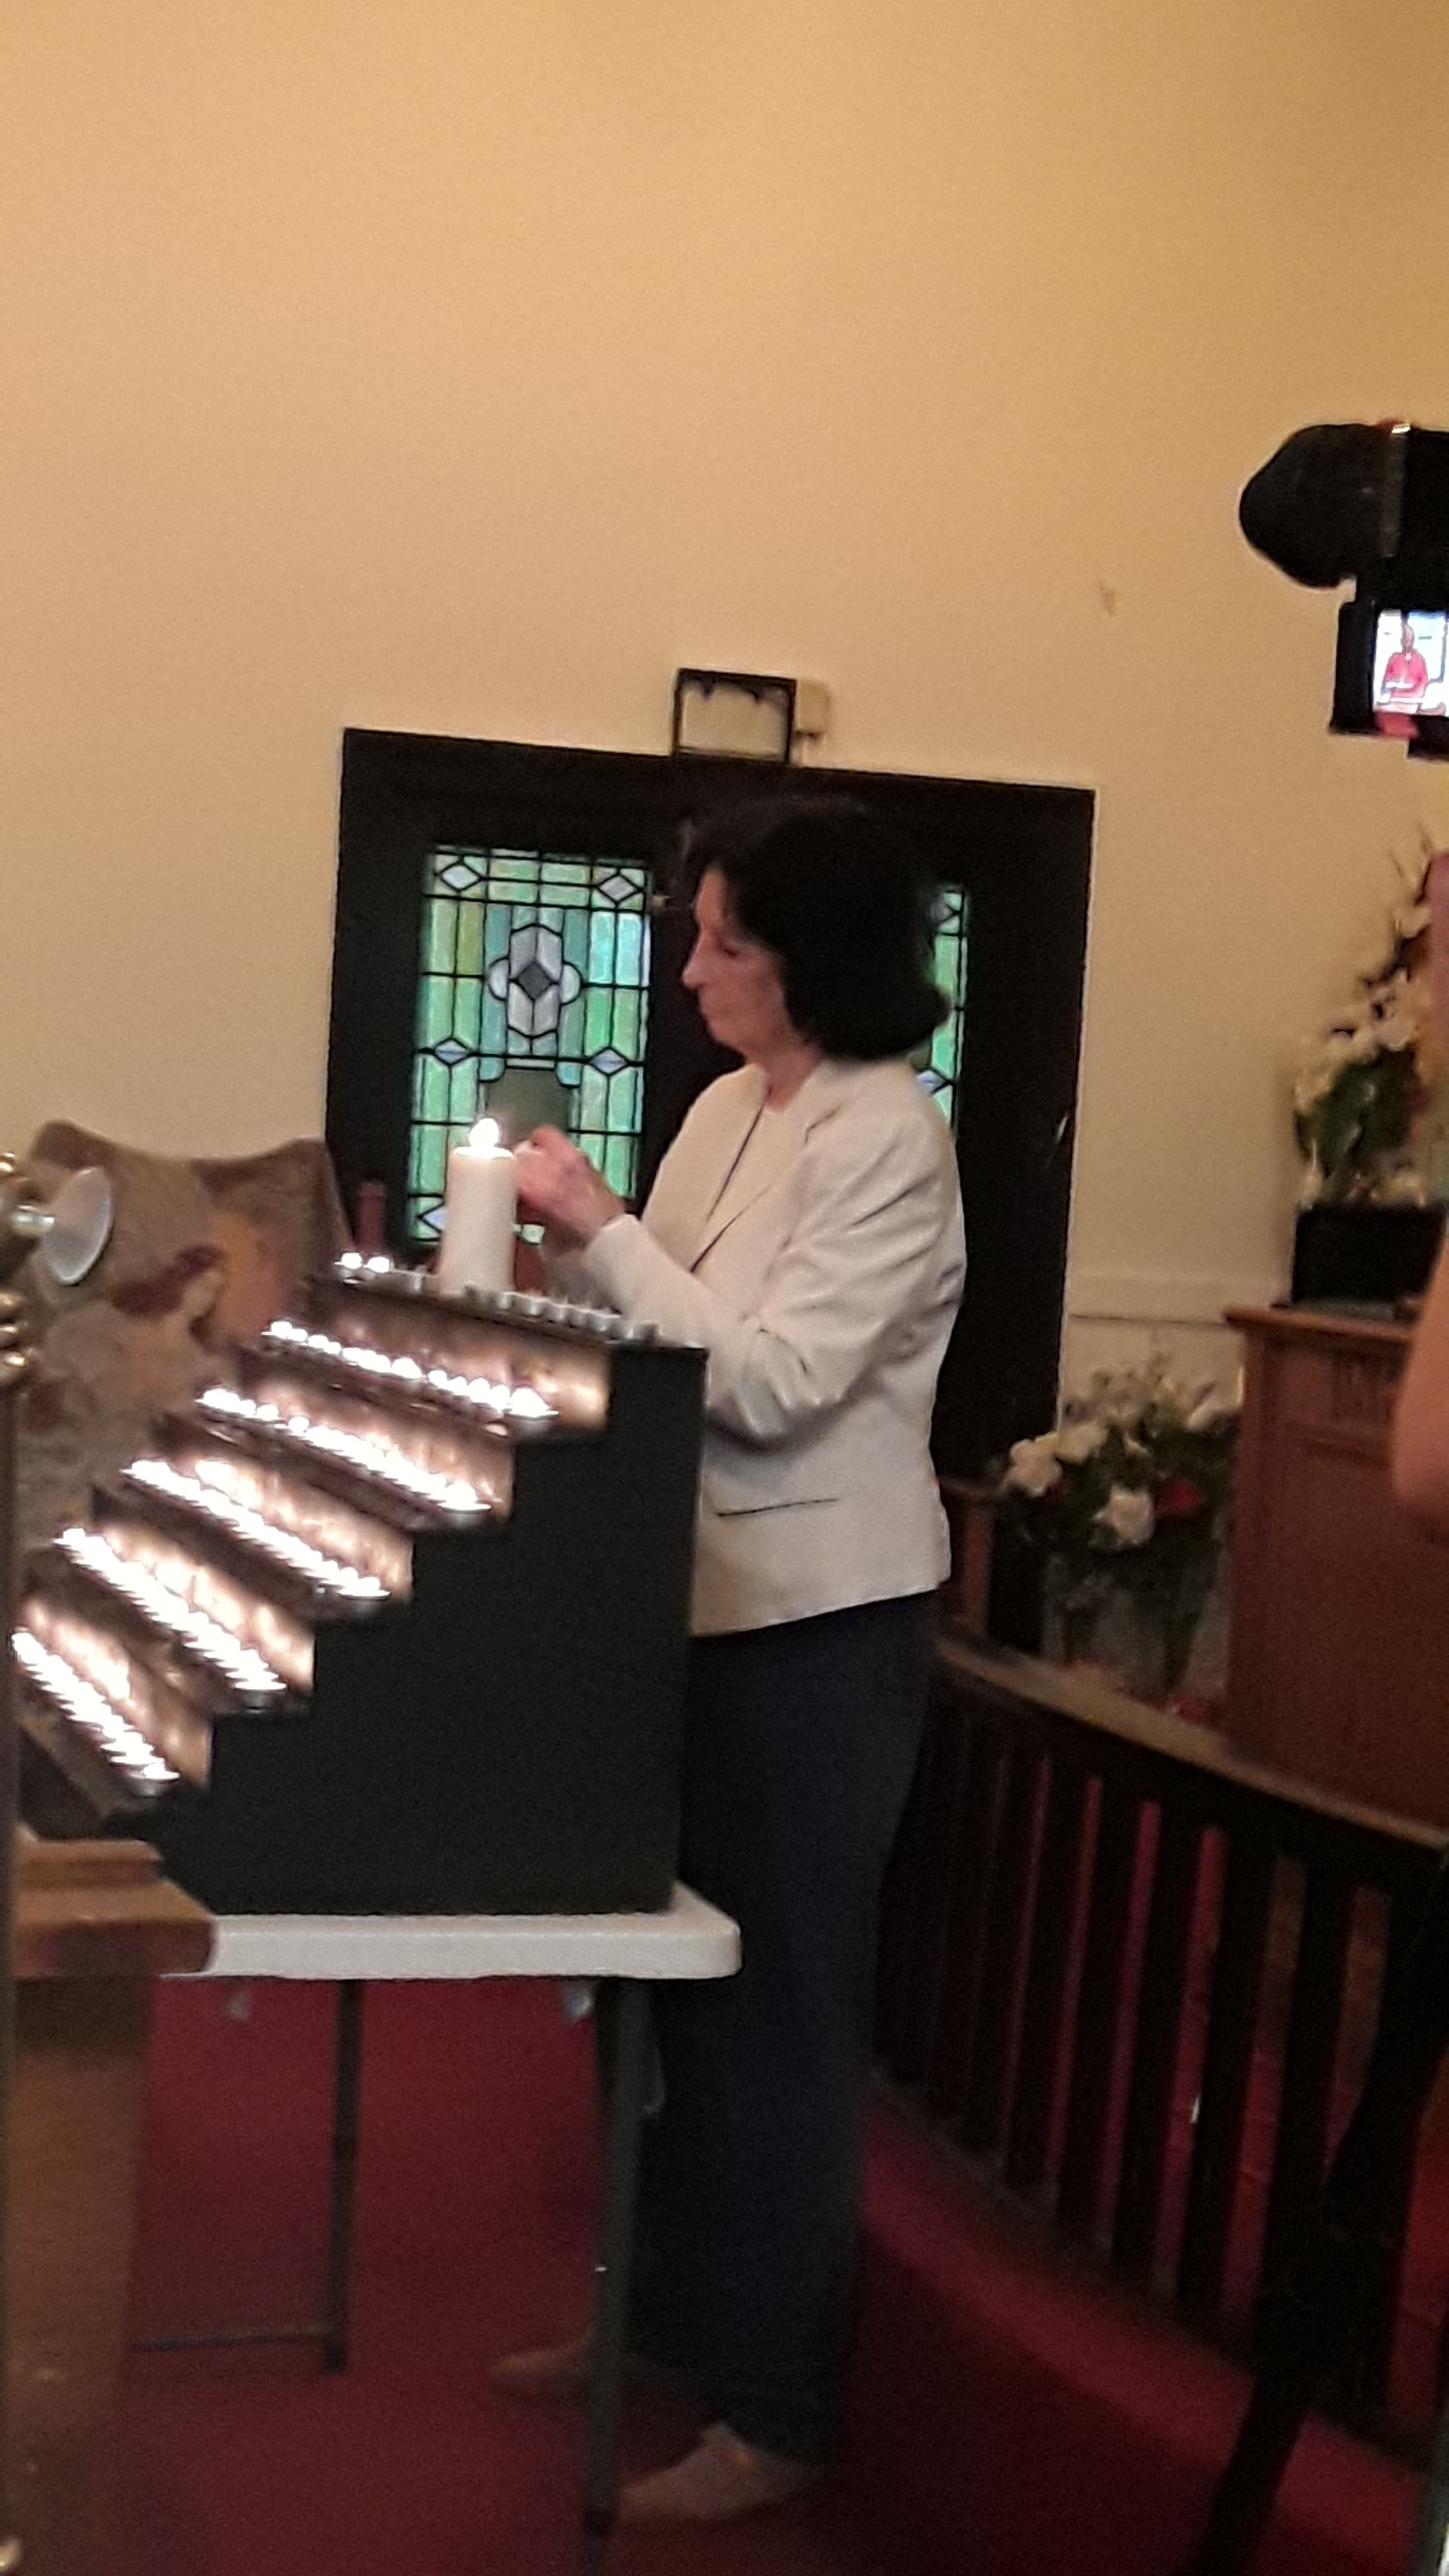 A woman lights a candle.